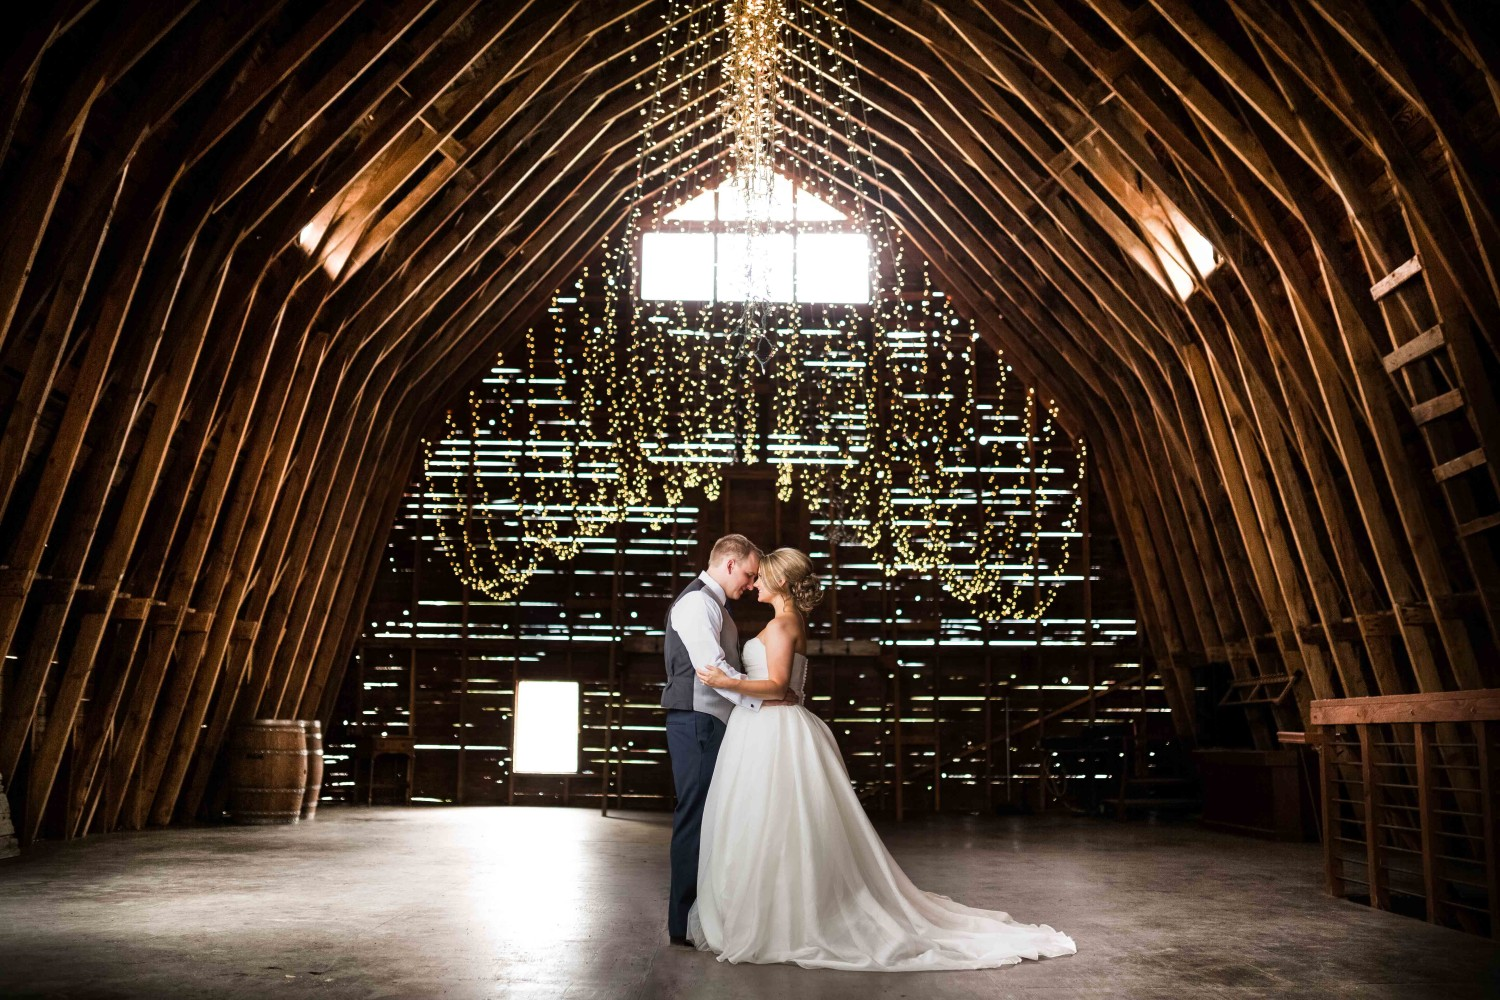 Bride and groom standing in the barn looking at each other under thousands of christmas lights at Settlers Creek in Coeur d'Alene.